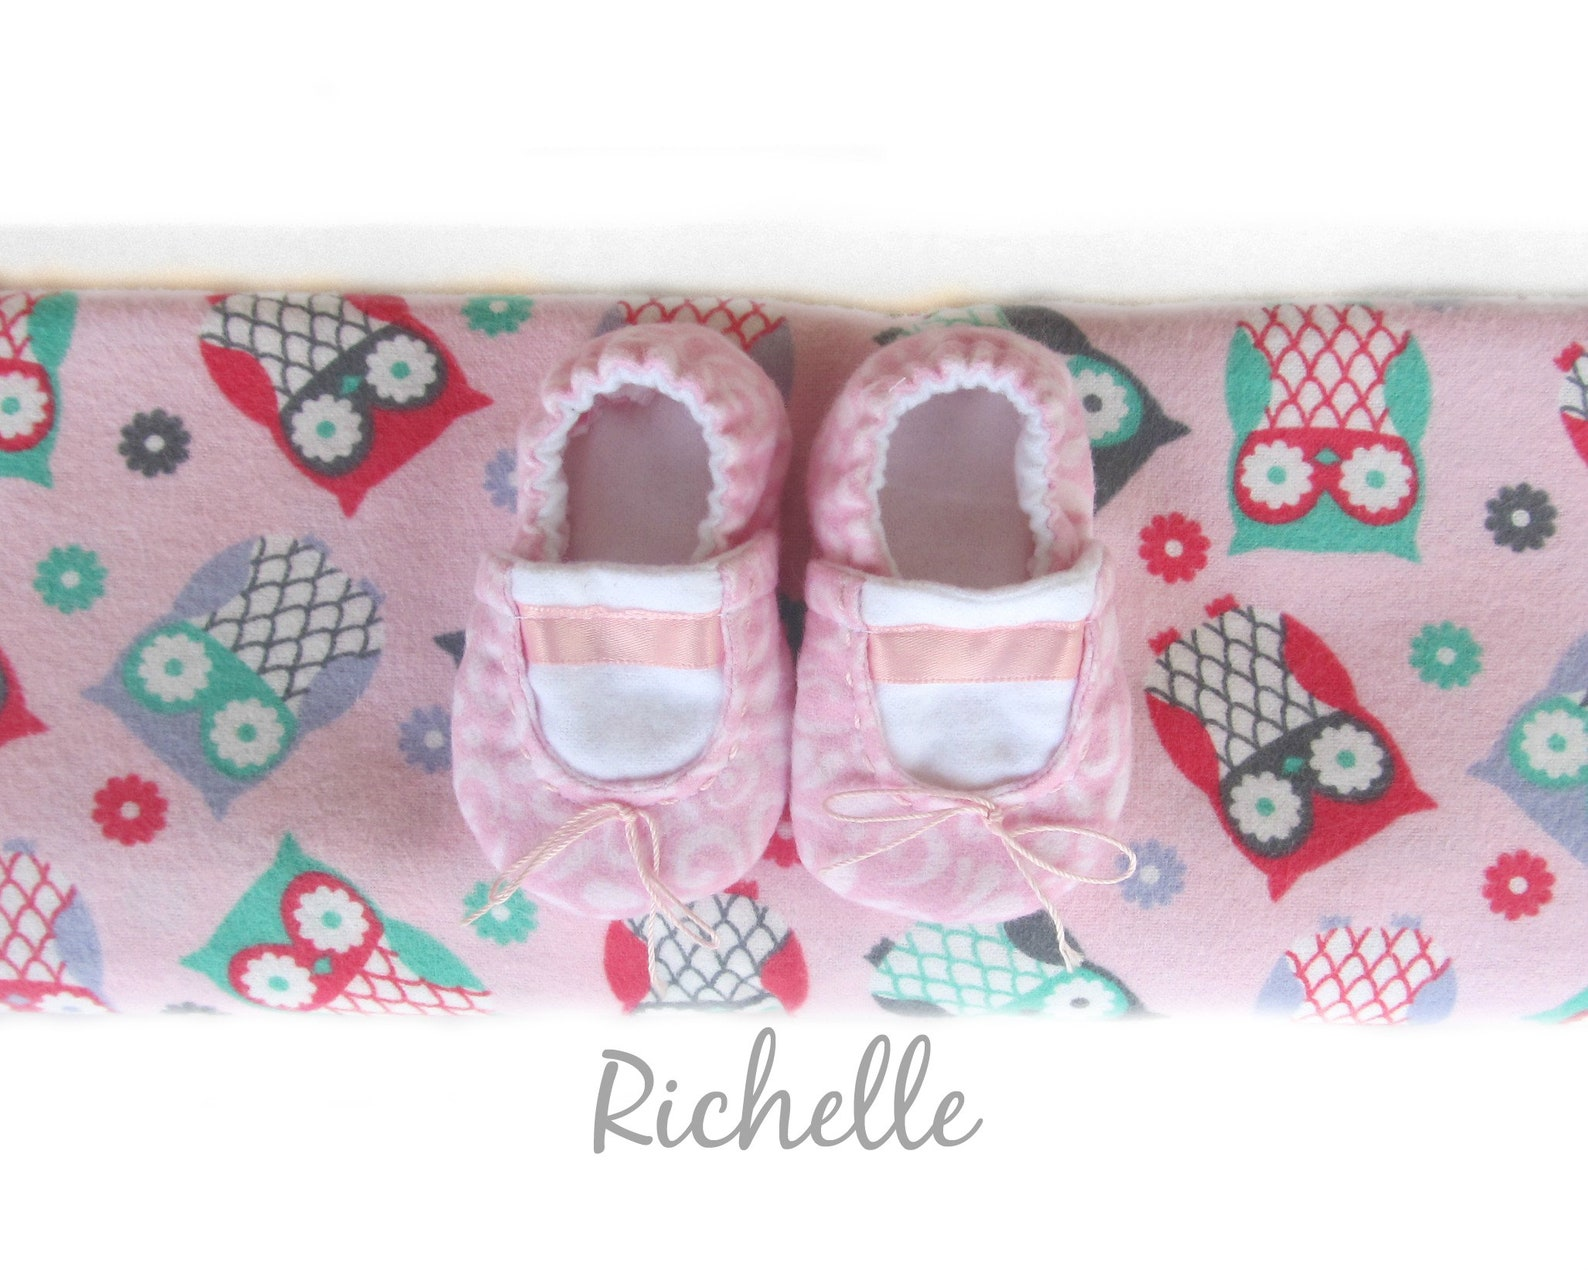 ballet baby shoes owl blanket gift set, pink slippers girl light weight swaddle girl newborn infant toddler soft sole crib booti